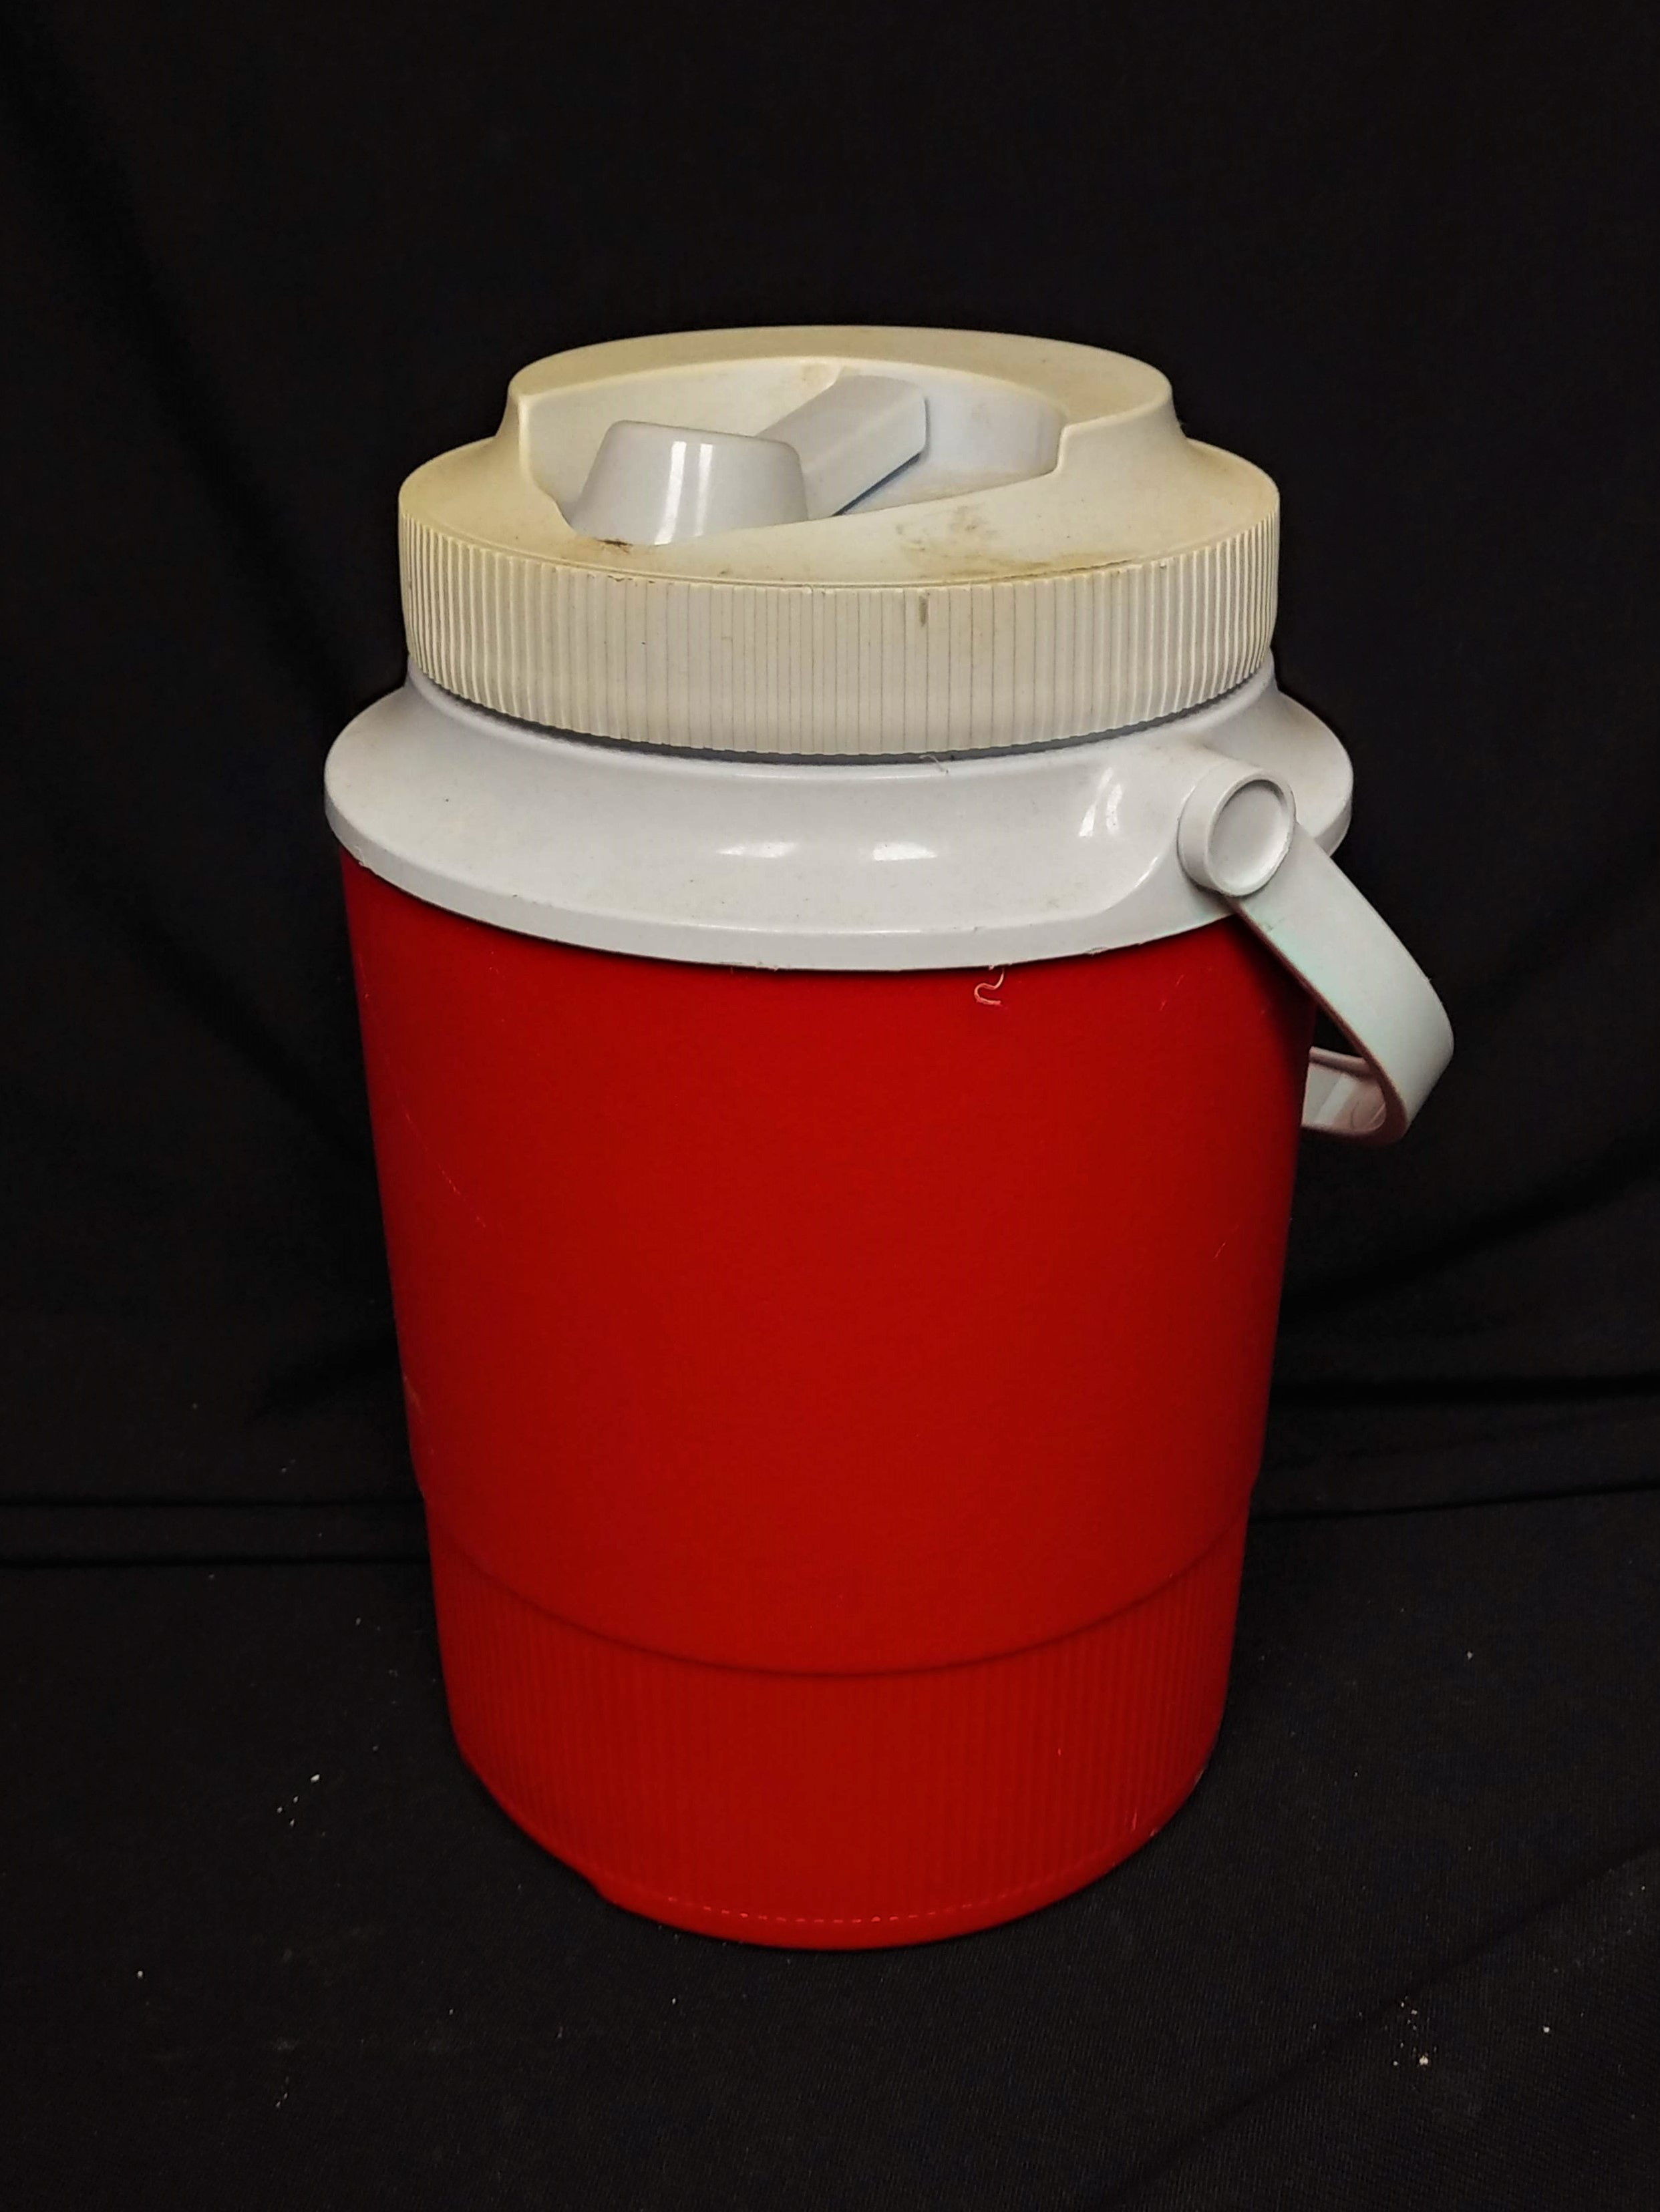 Rubbermaid Jug Cooler